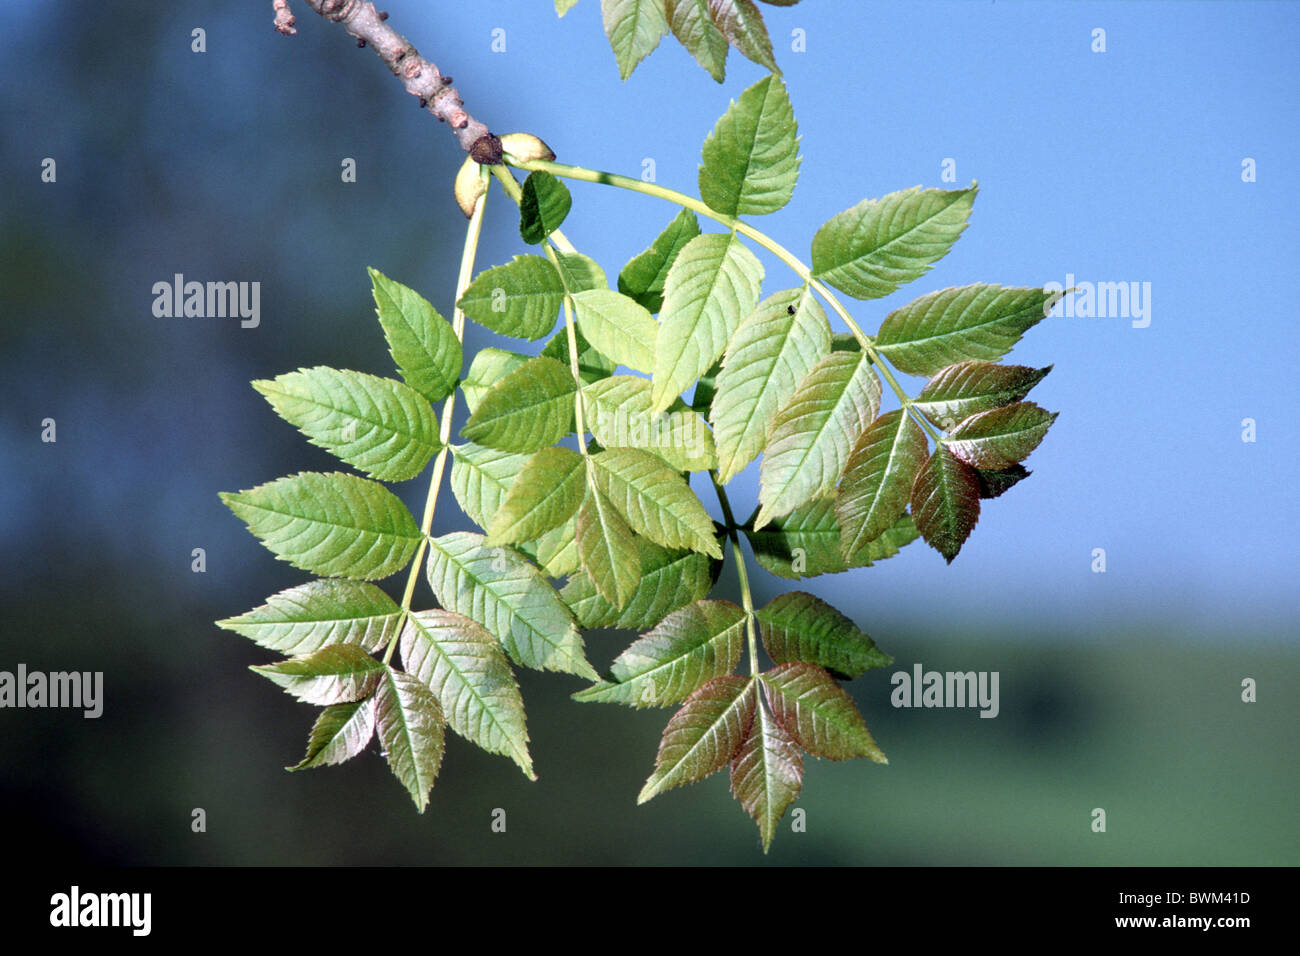 Common Ash, European Ash (Fraxinus excelsior), twig with leaves. - Stock Image